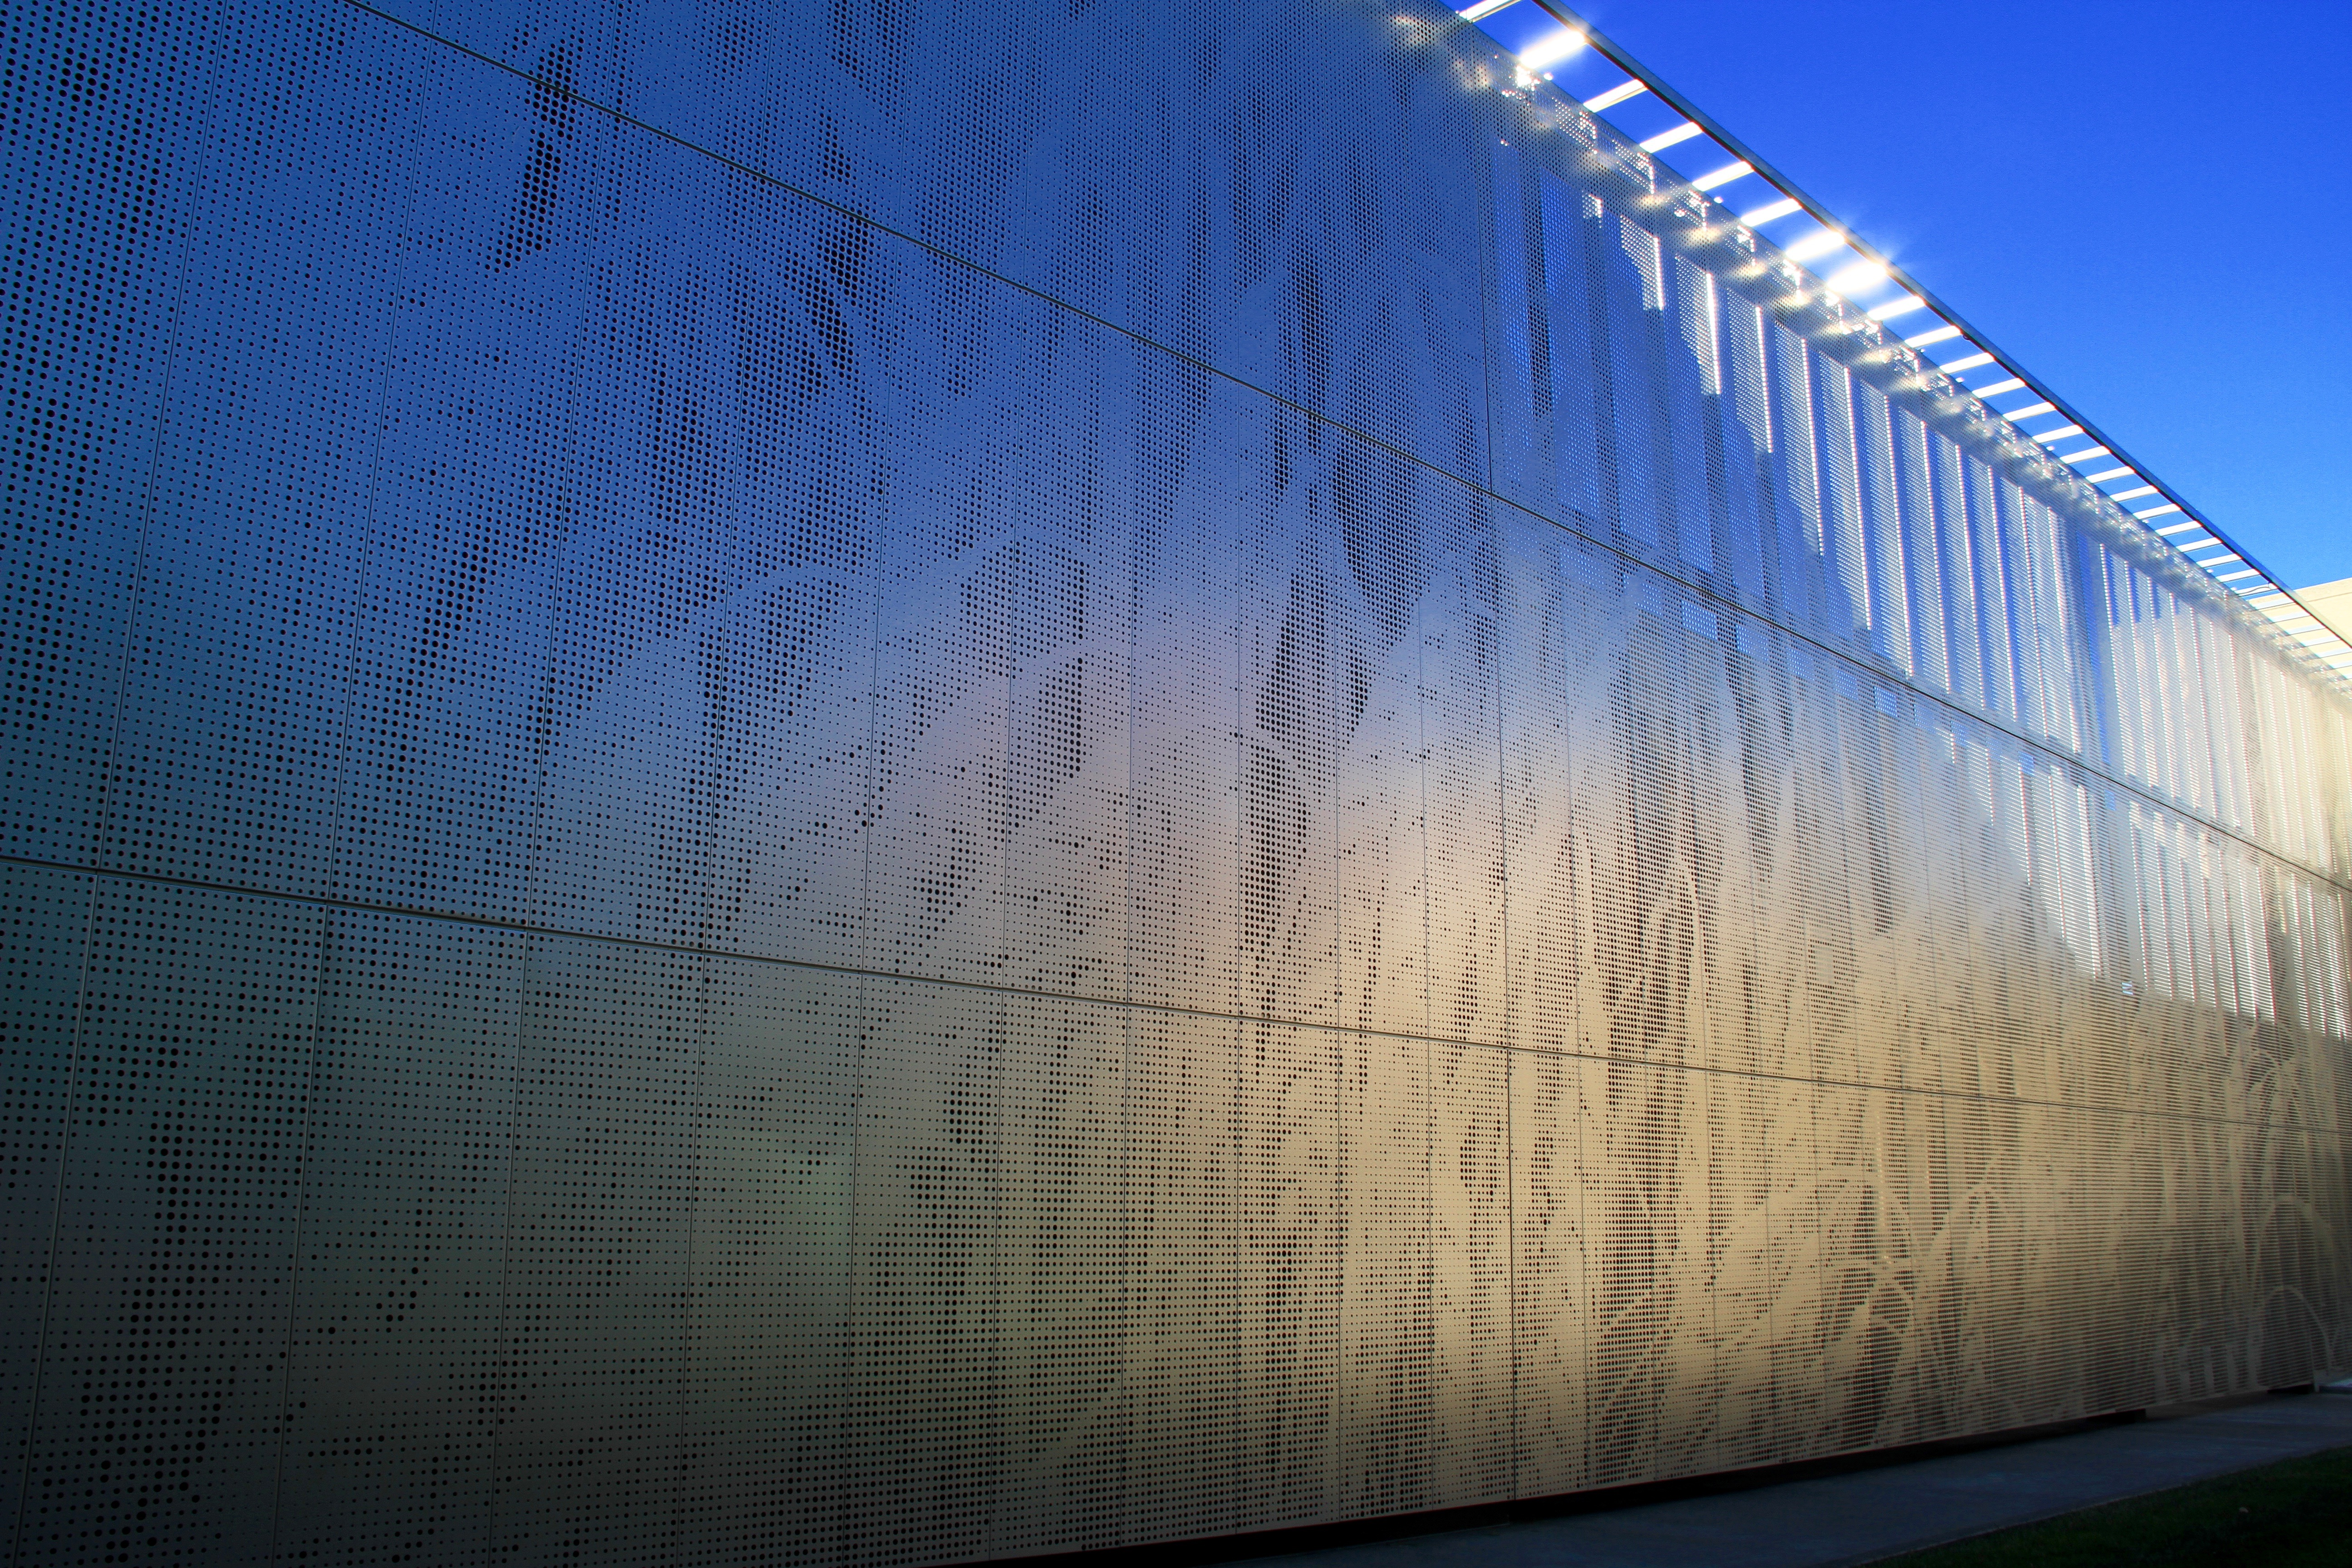 Photo of the Waving the Wheat Wall at the DeBruce Center.